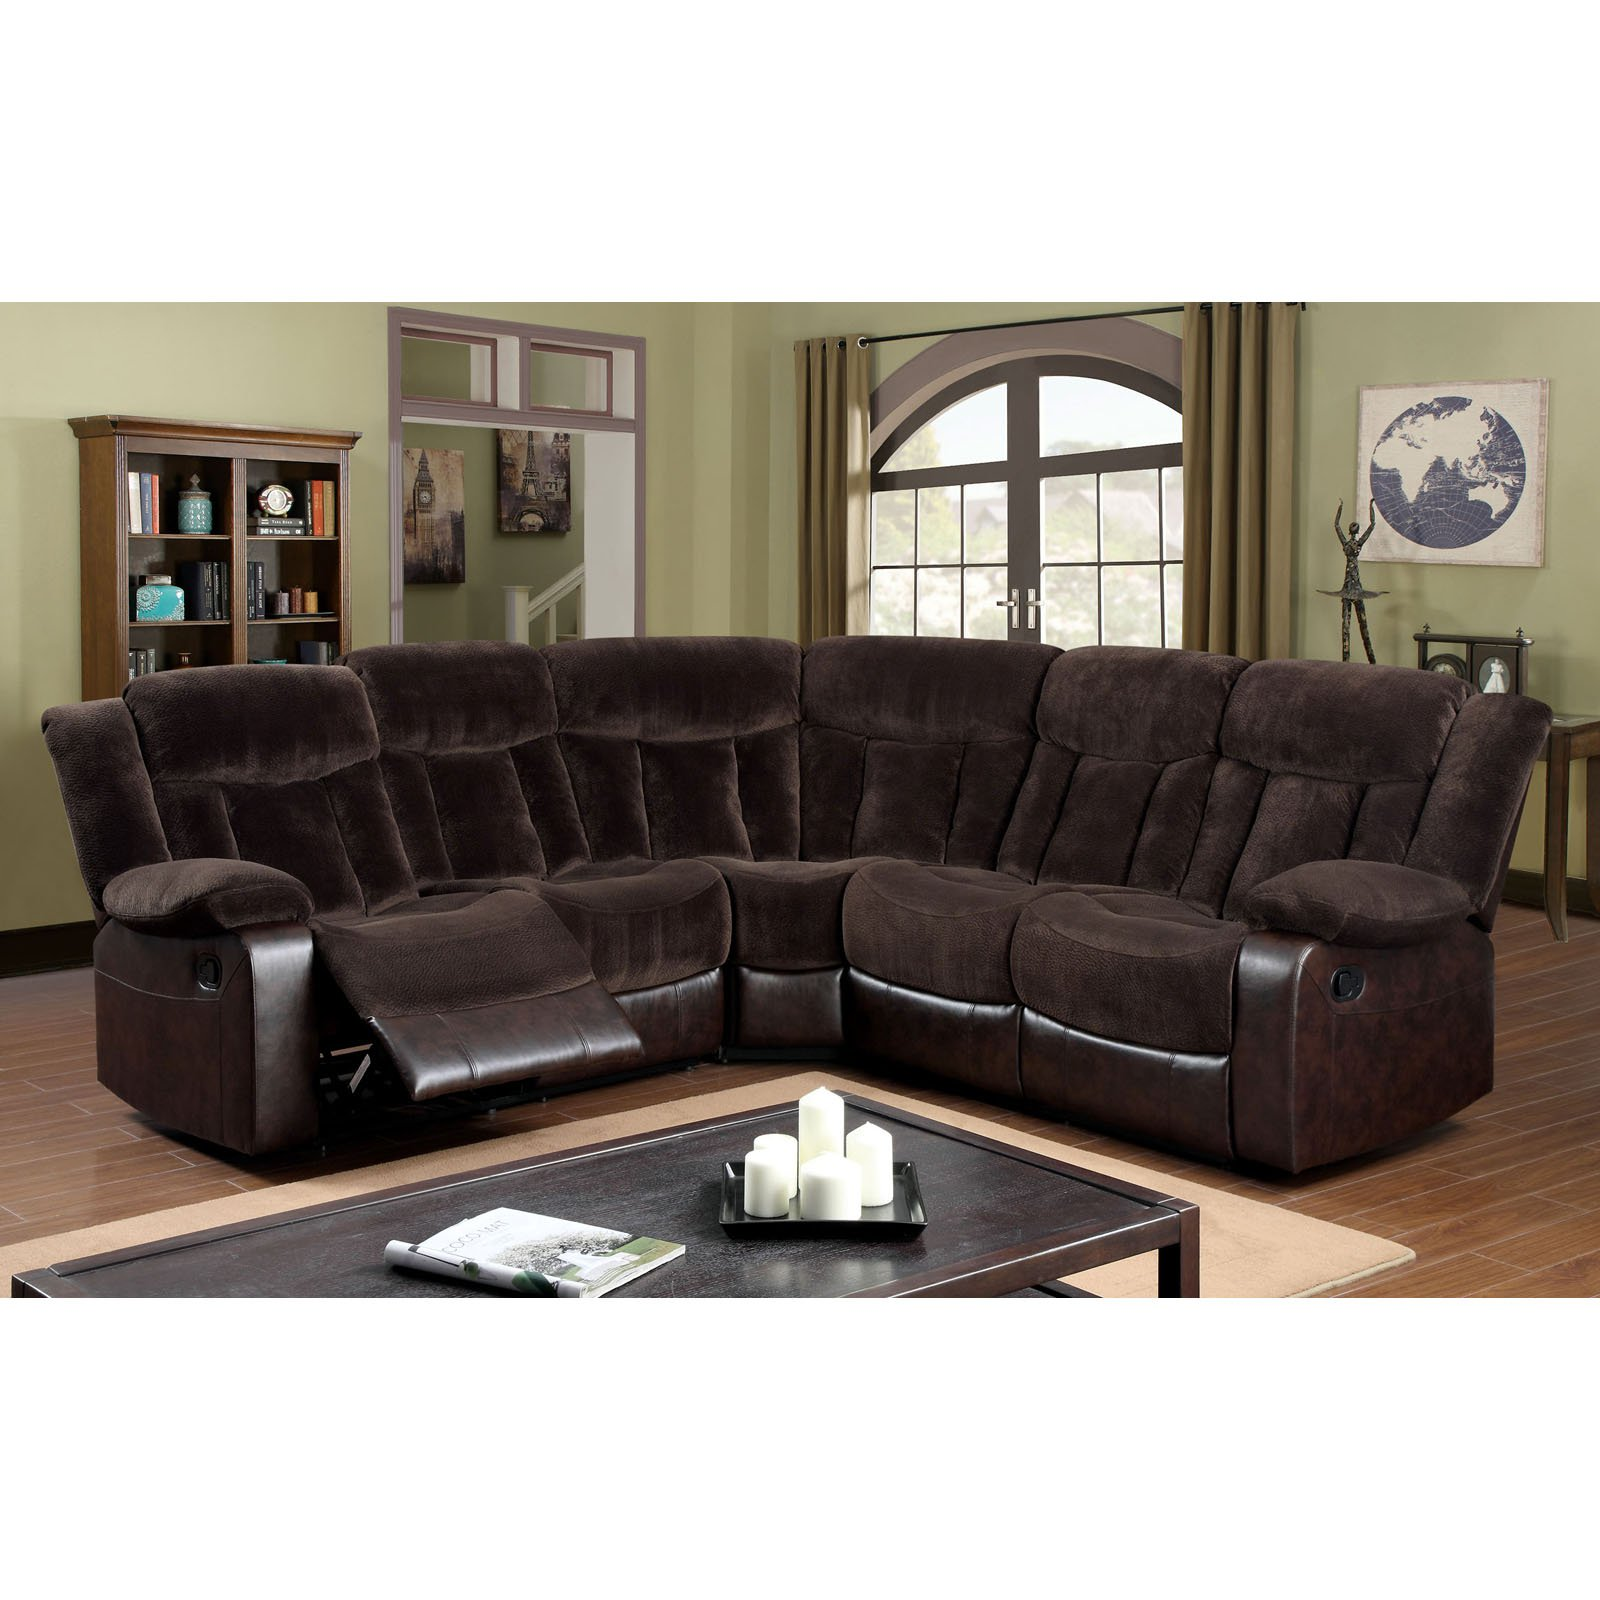 Furniture of America Blanford Corner Sectional Sofa by Enitial Lab